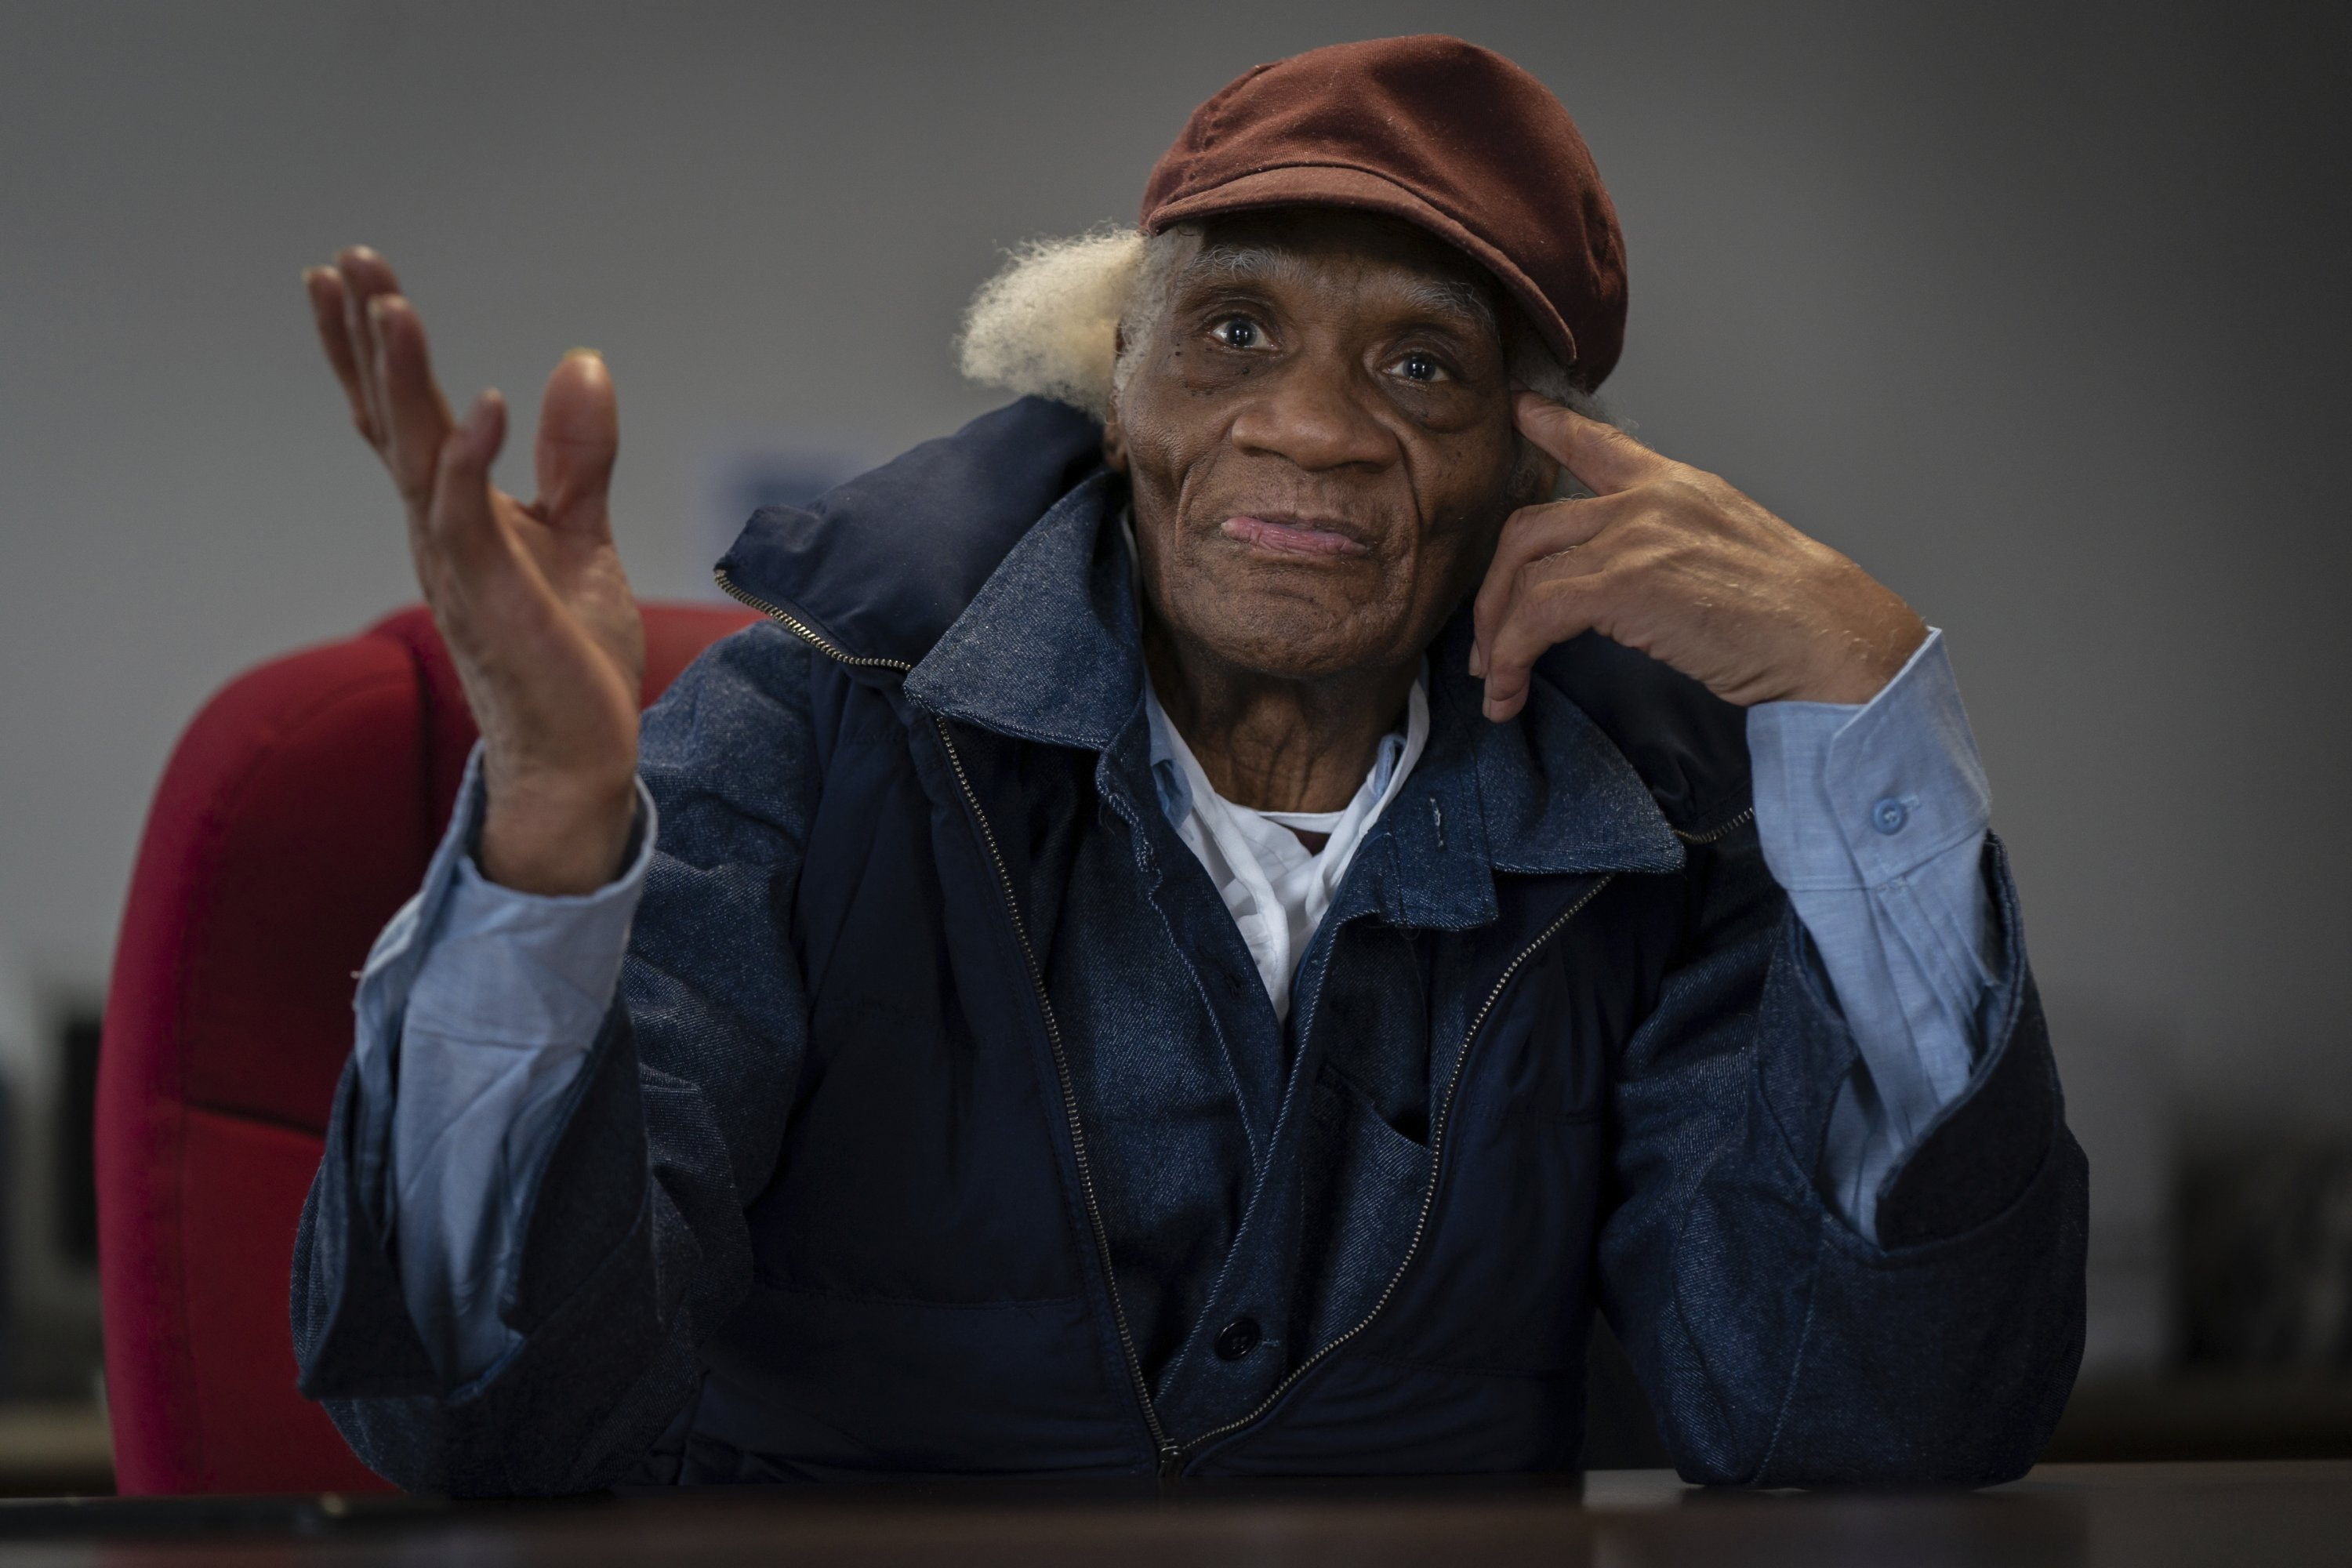 Joe Ligon, the oldest juvenile lifer of the US, speaks with the media in his lawyer's office at the Defender Association of Philadelphia after being released from prison, in Center City, Feb. 11, 2021. (The Philadelphia Inquirer via AP)